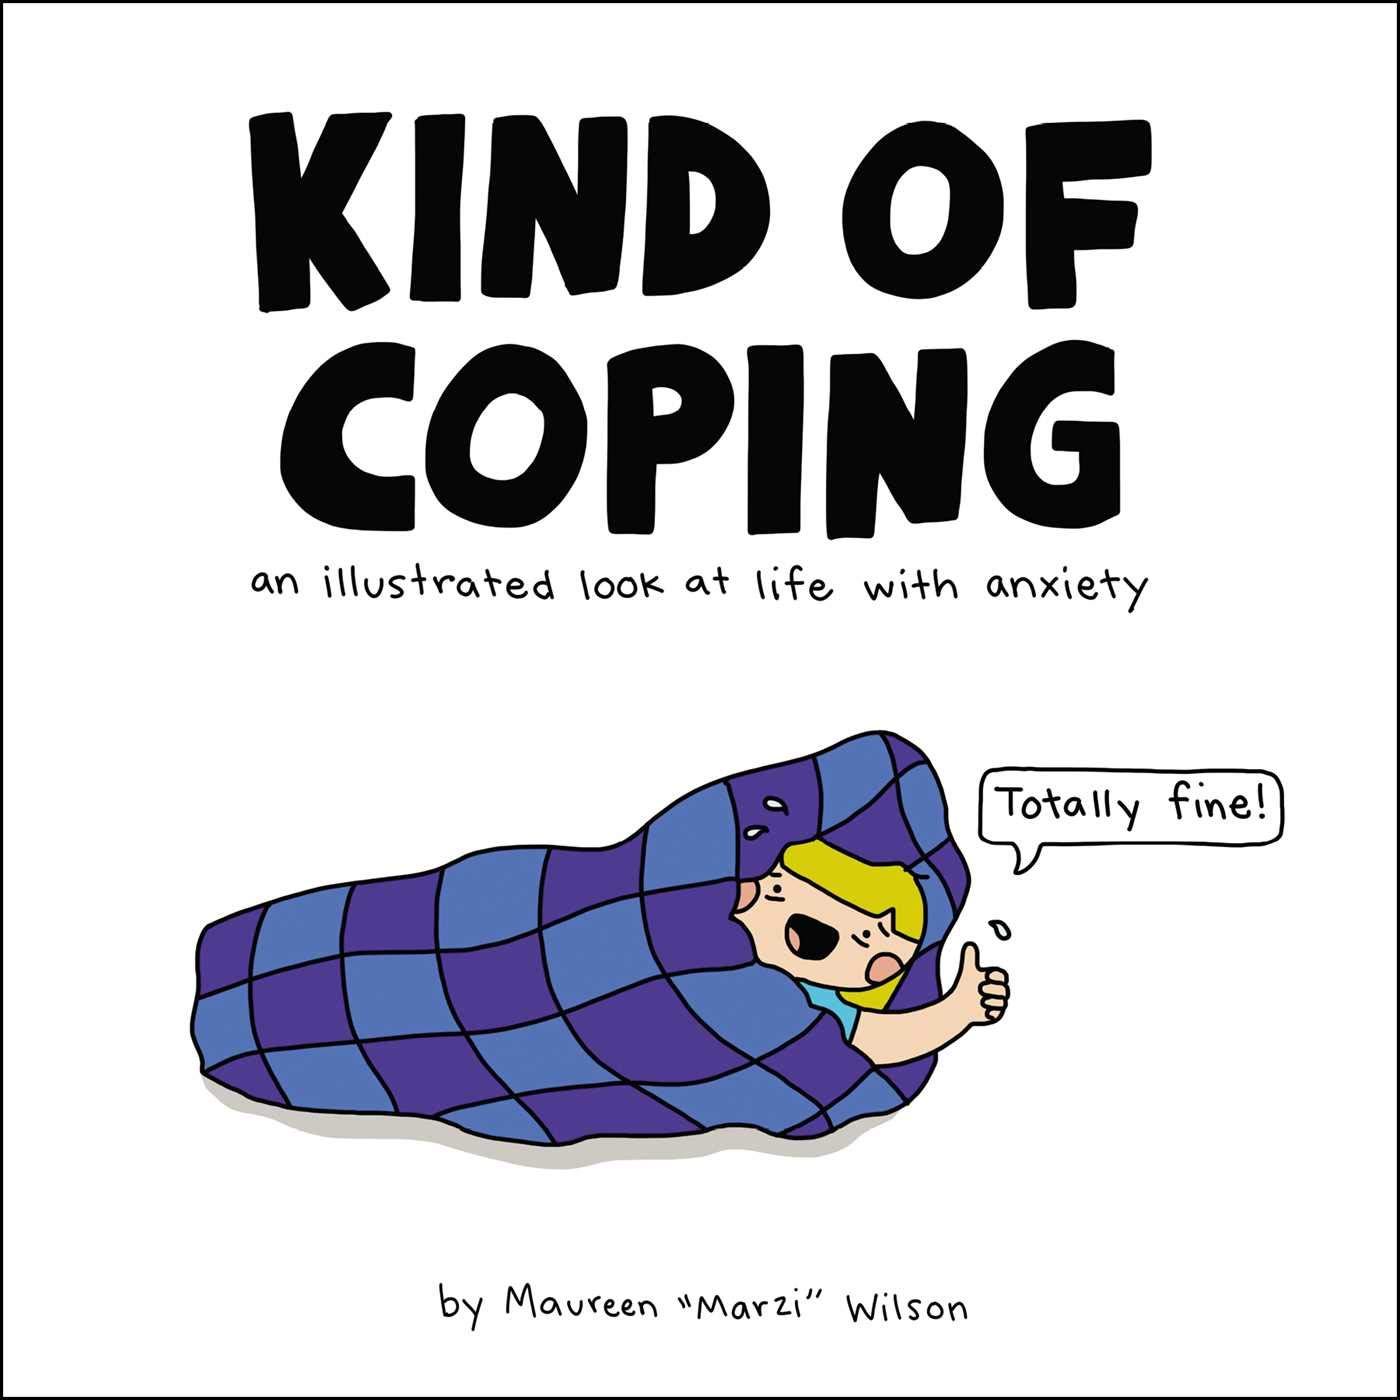 Amazon.com: Kind of Coping: An Illustrated Look at Life with ...